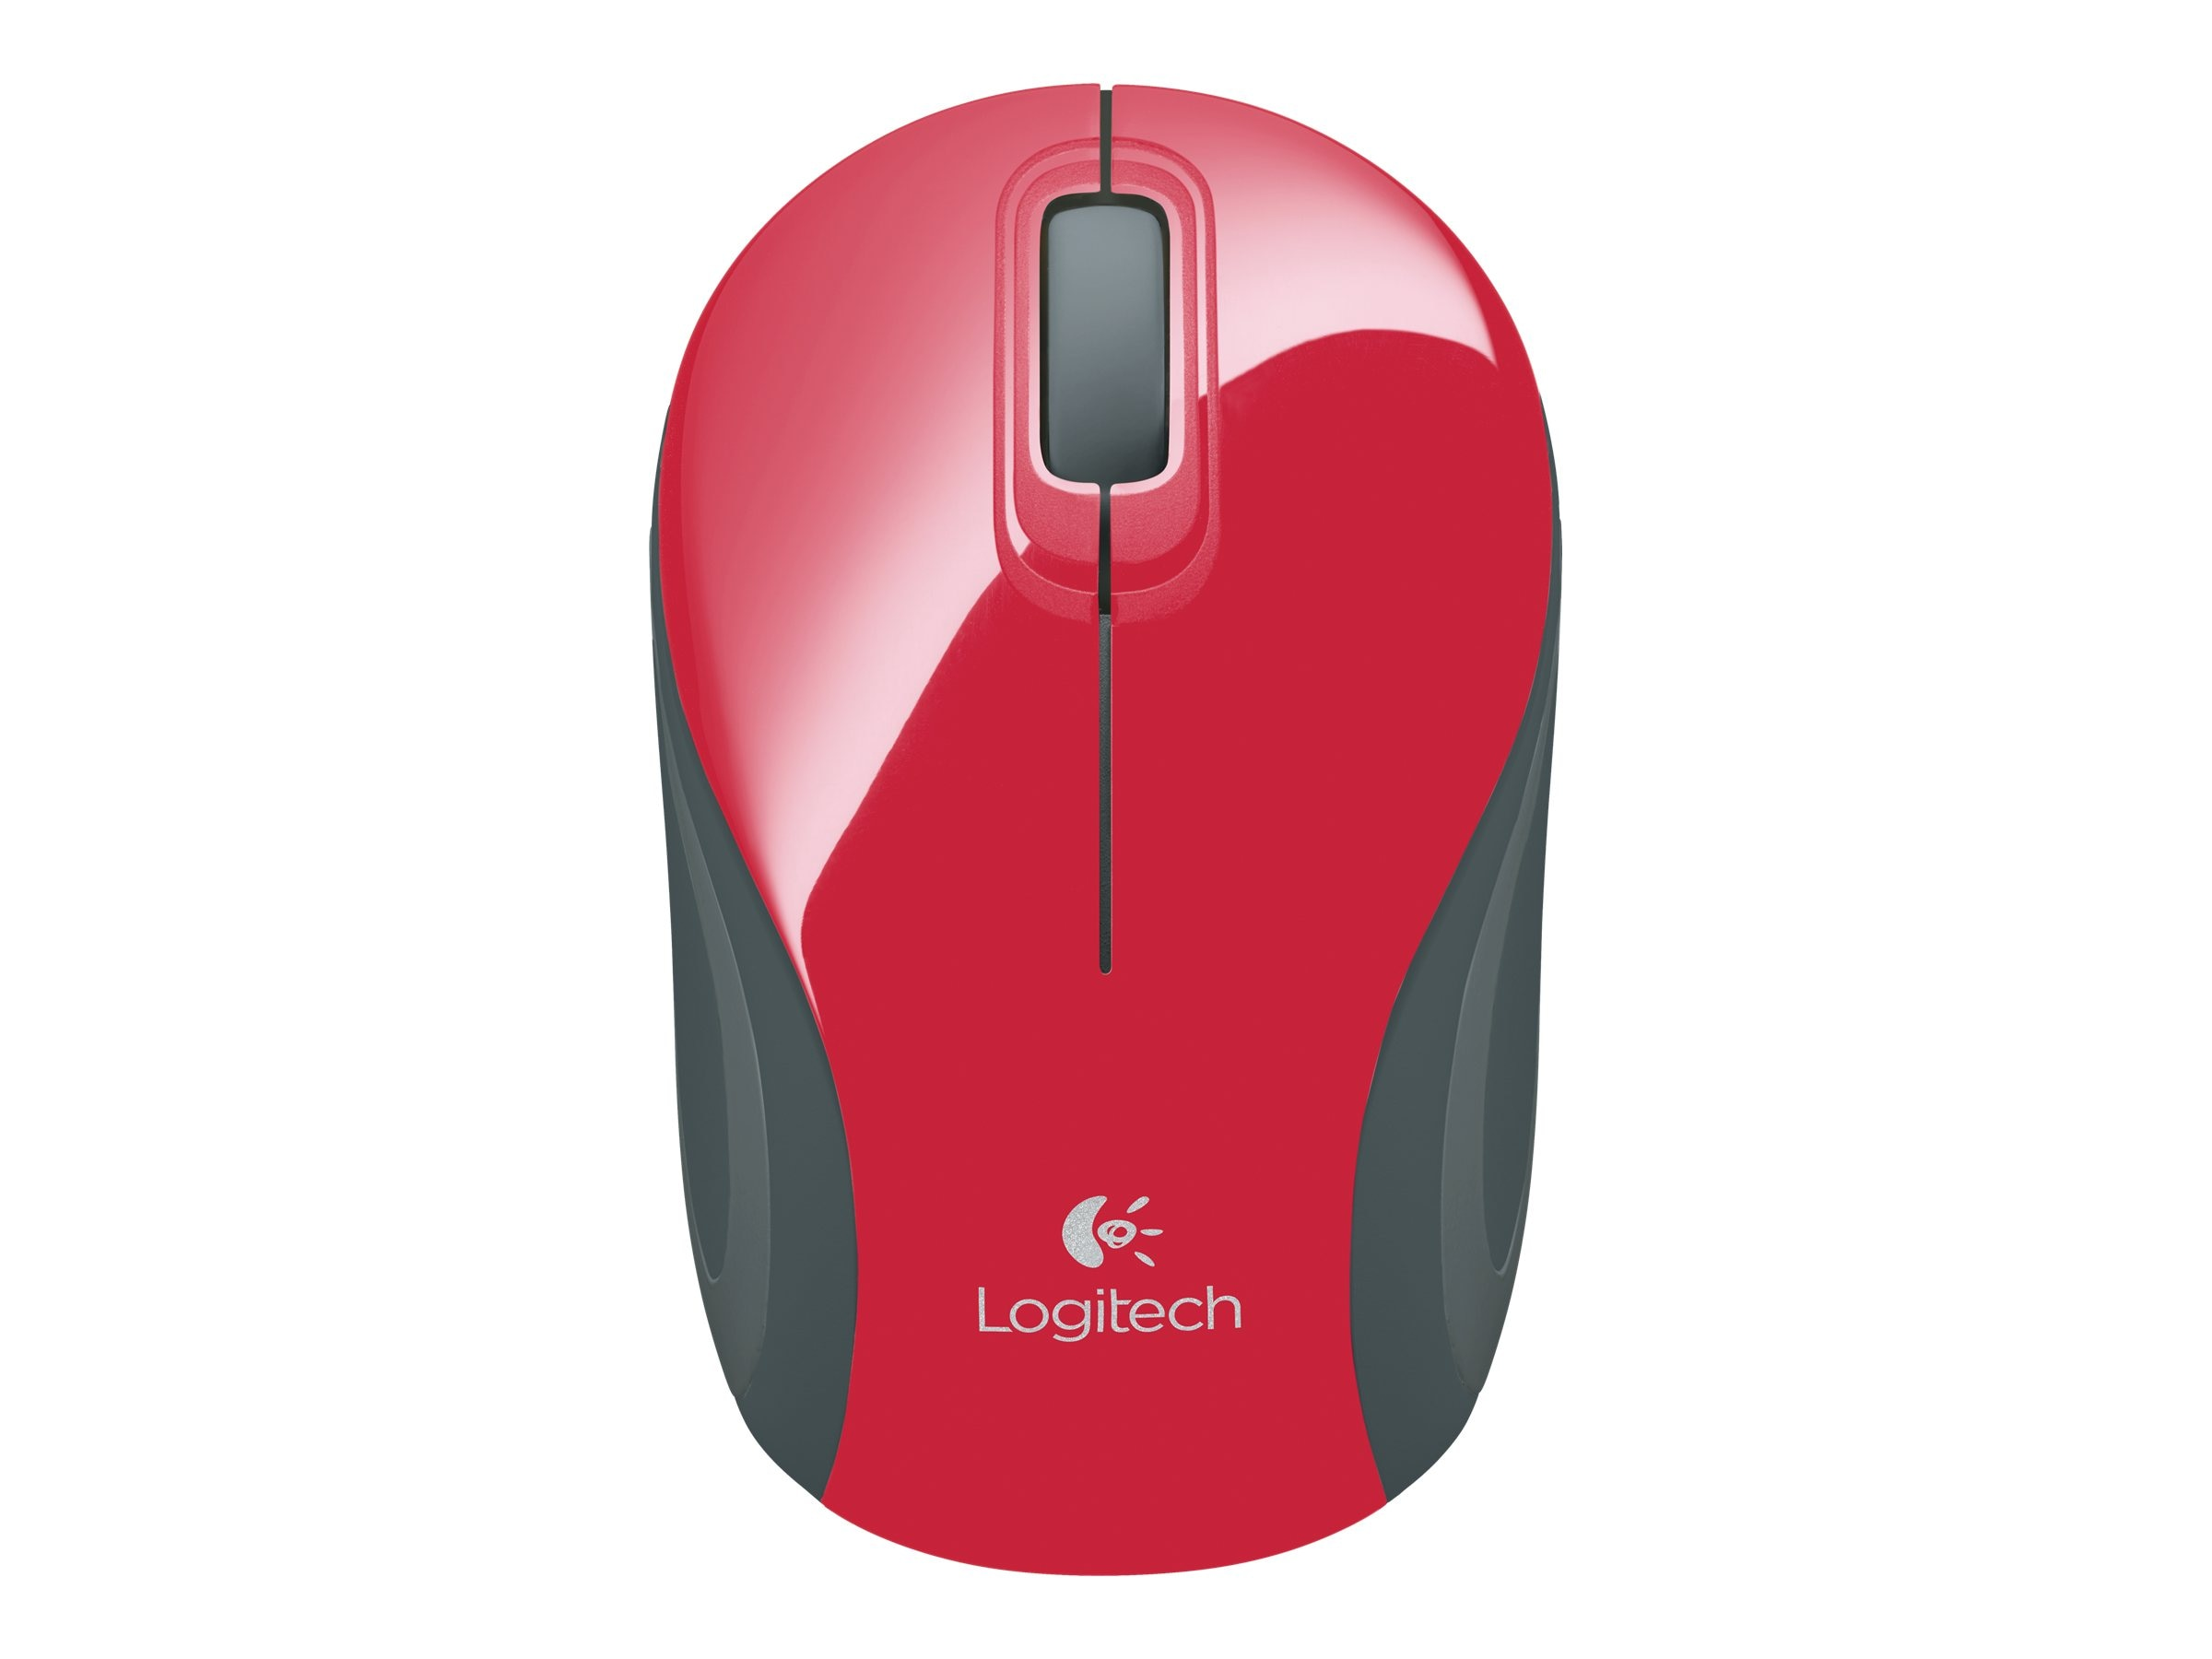 Logitech M187 Wireless Mini Red Extra Small Design, 910-002727, 14673644, Mice & Cursor Control Devices